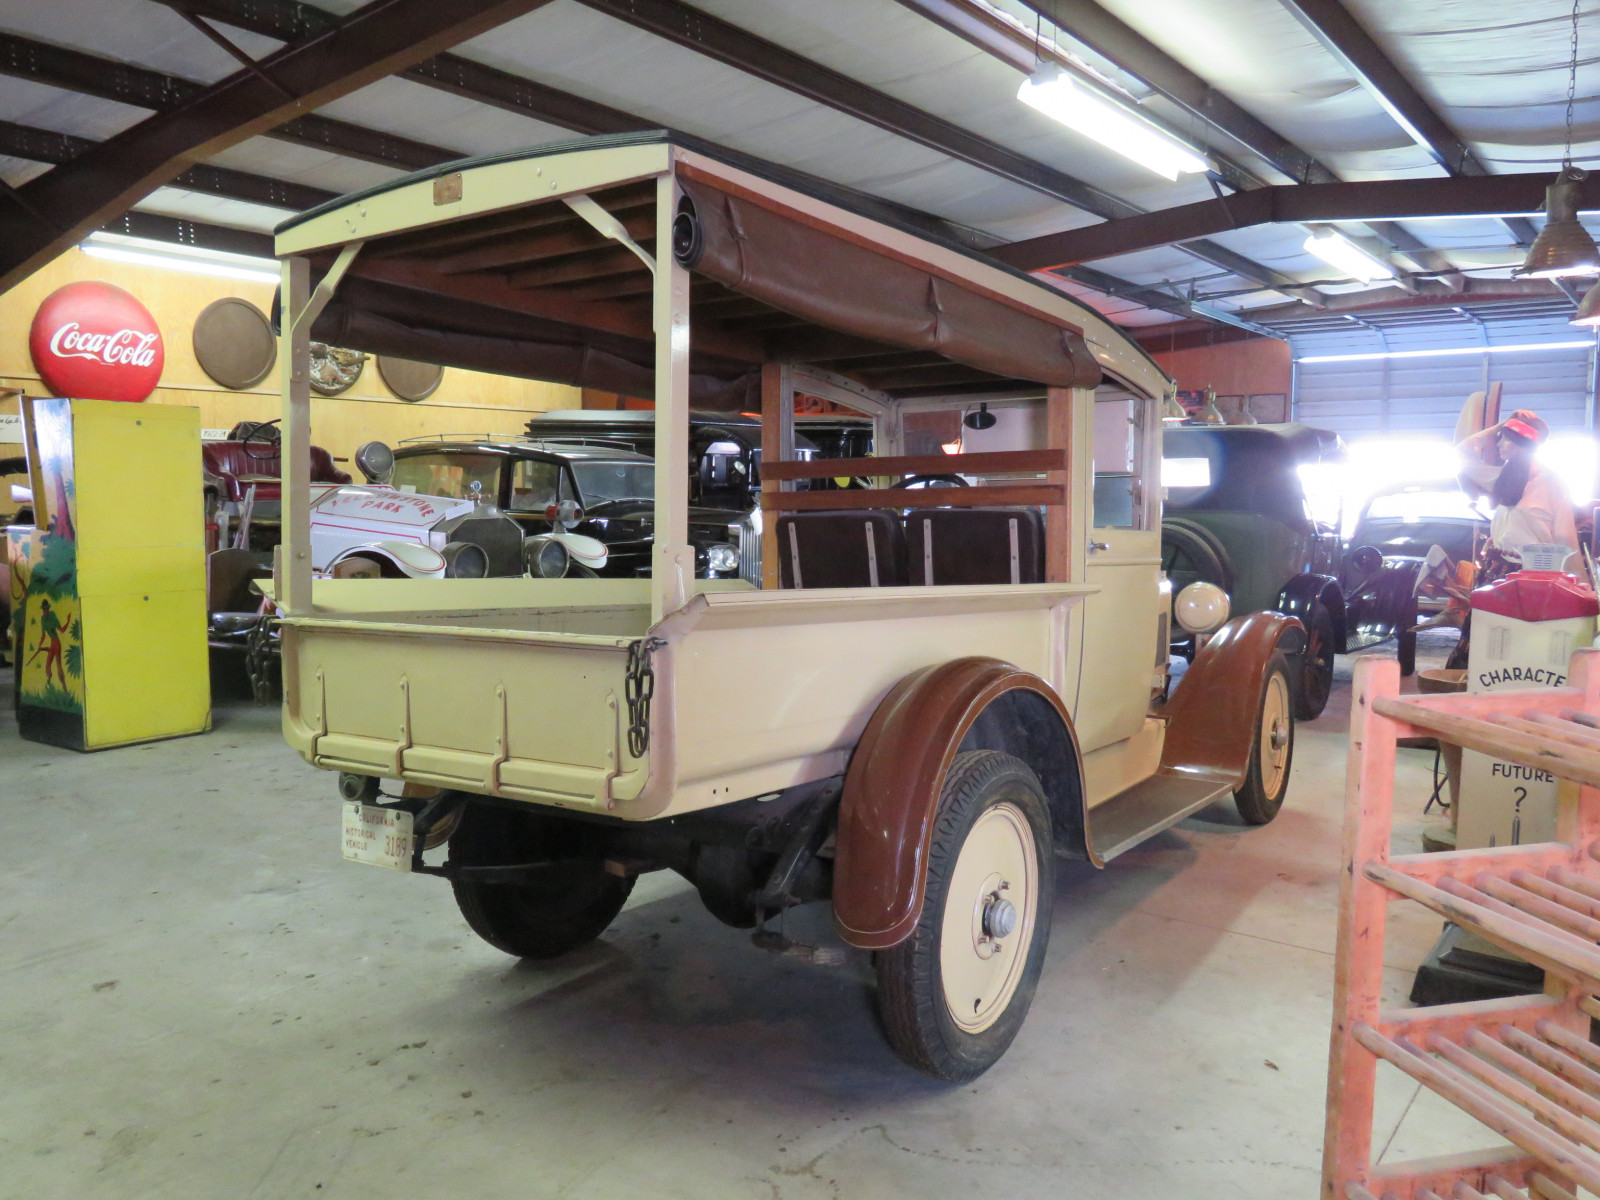 1929 dodge Brothers-Graham Canopy Express Truck - Image 7